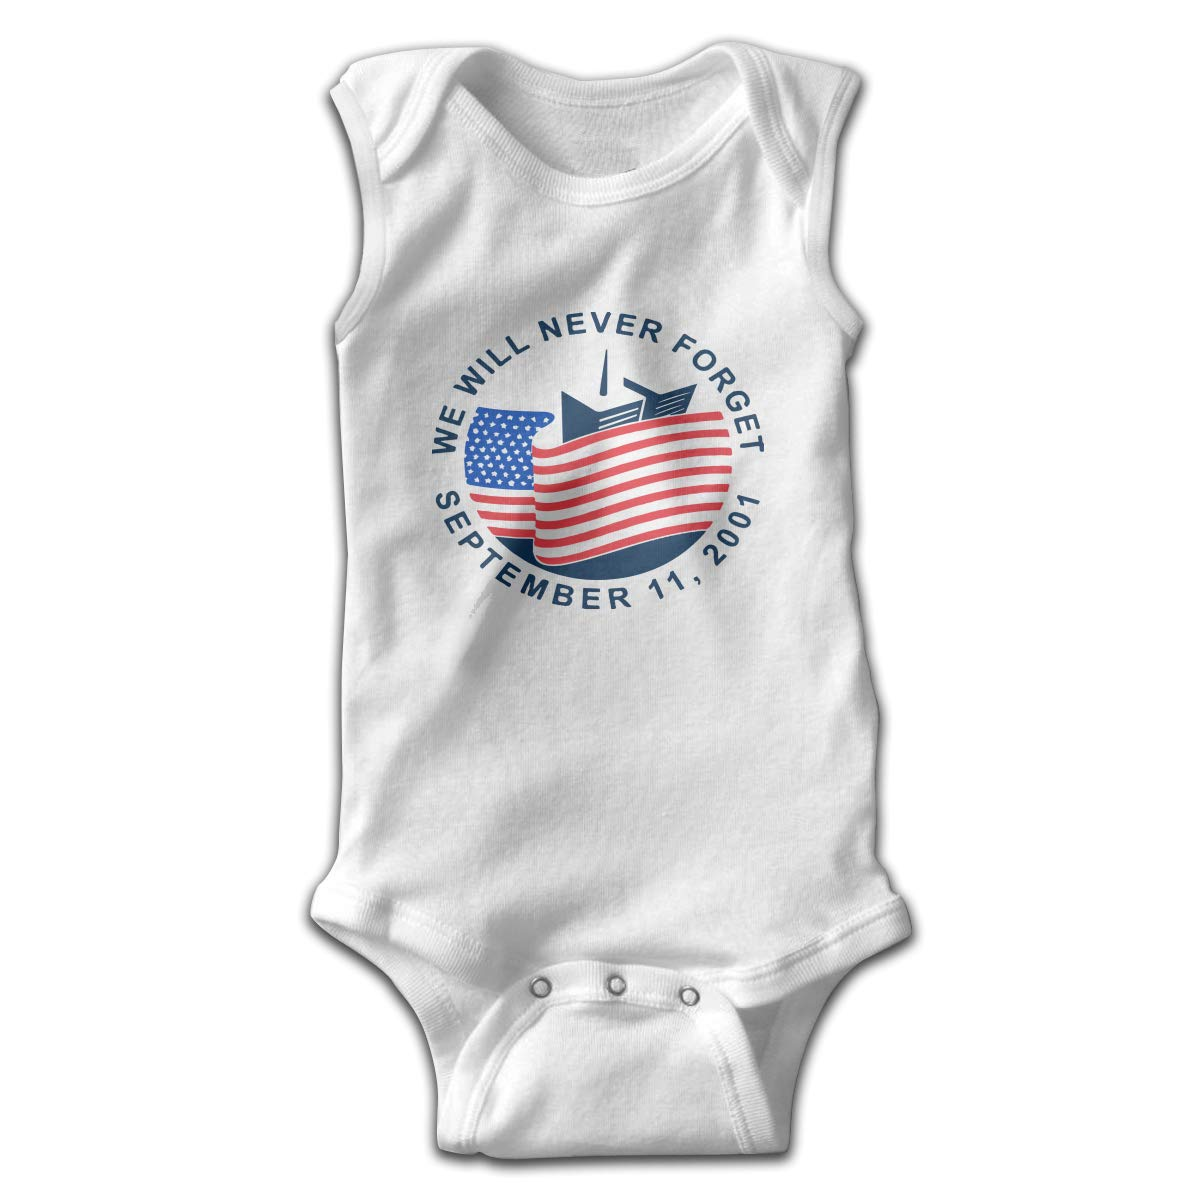 CZDewQ80 Newborn We Will Never Forget Sleeveless Baby Clothes Romper Jumpsuit 100/% Cotton